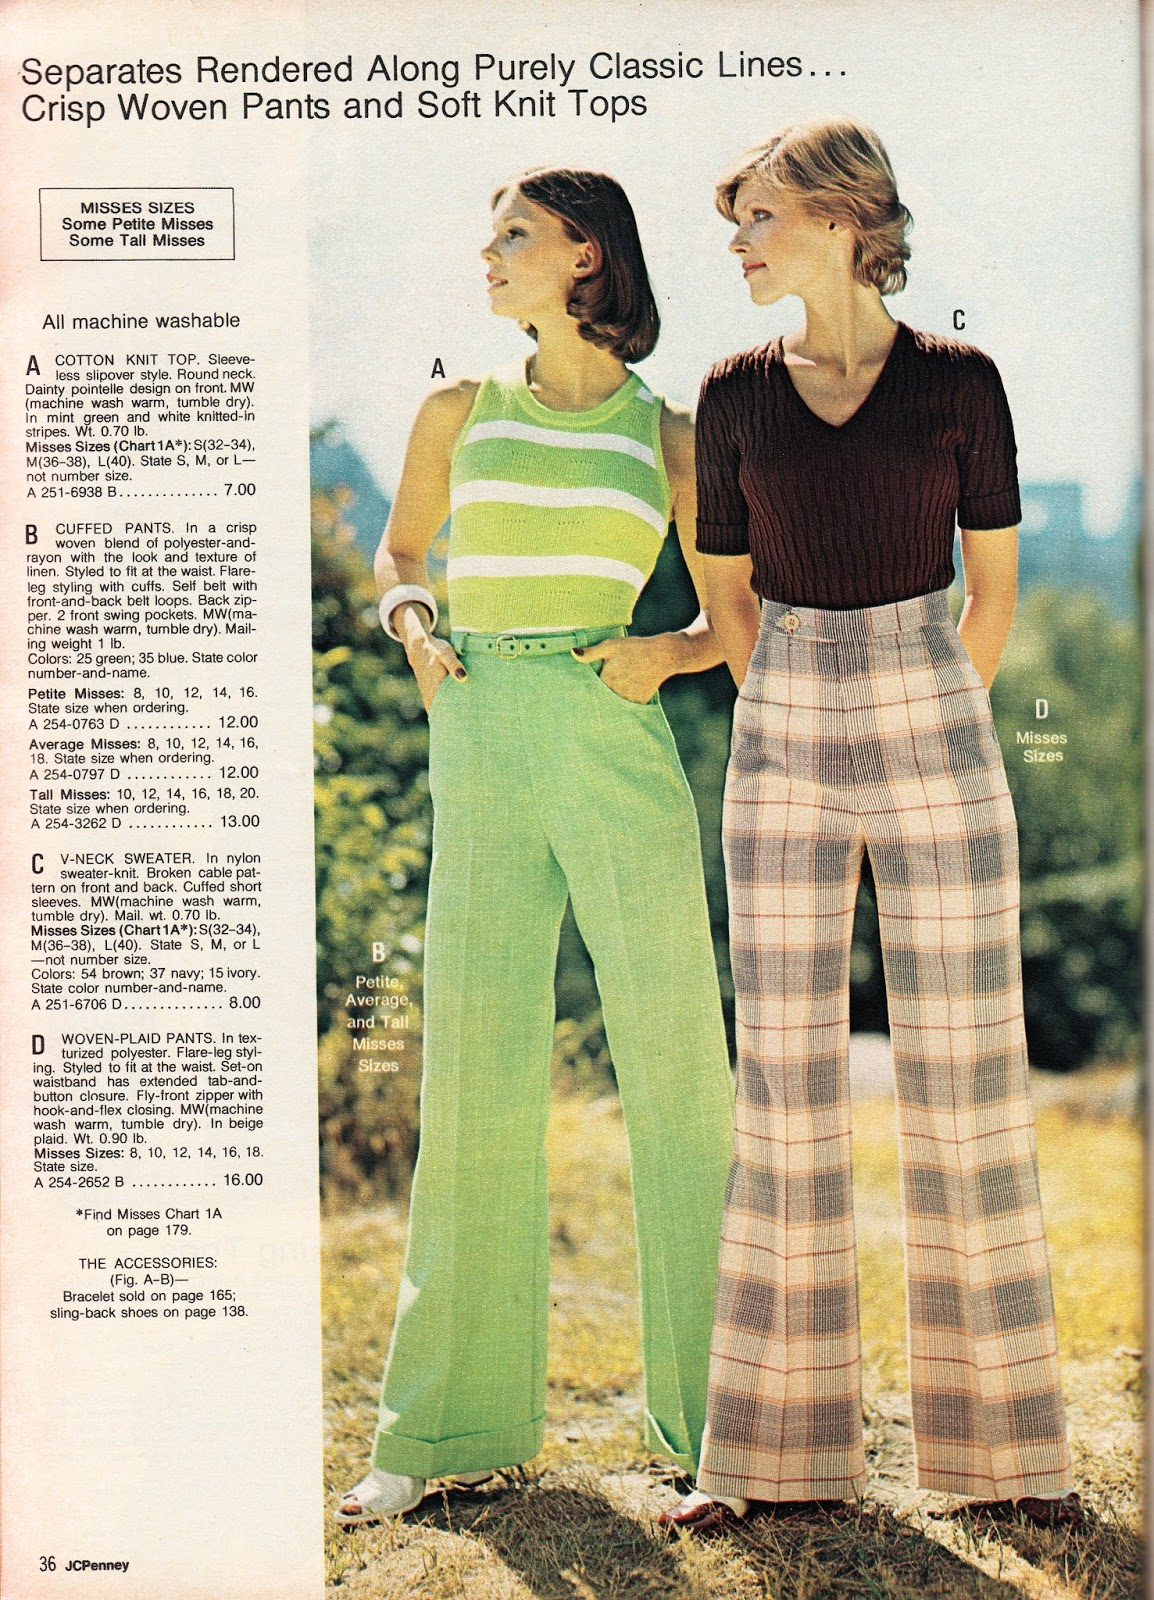 aaad88b221d Kathy Loghry Blogspot  That s So 70s  High Rise Pants!!